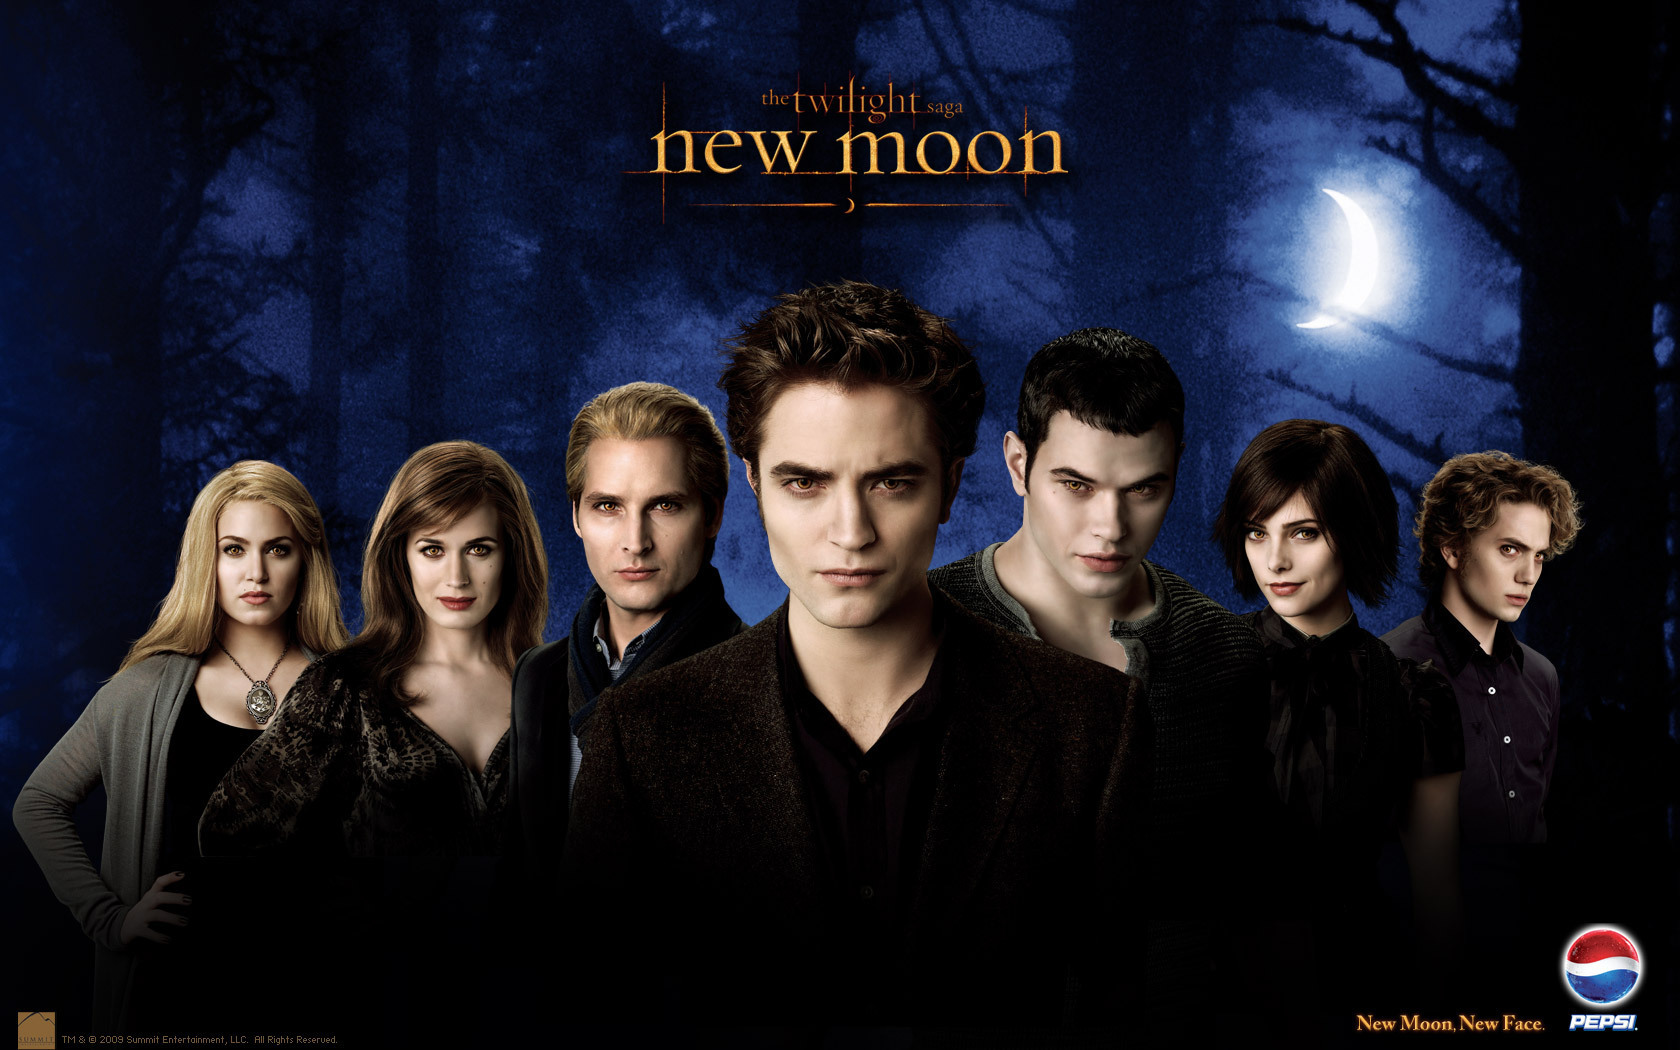 Twilight Breaking Dawn Wallpaper For Iphone Hq Pepsi Italy New Moon Wallpaper Exclusive Twilight